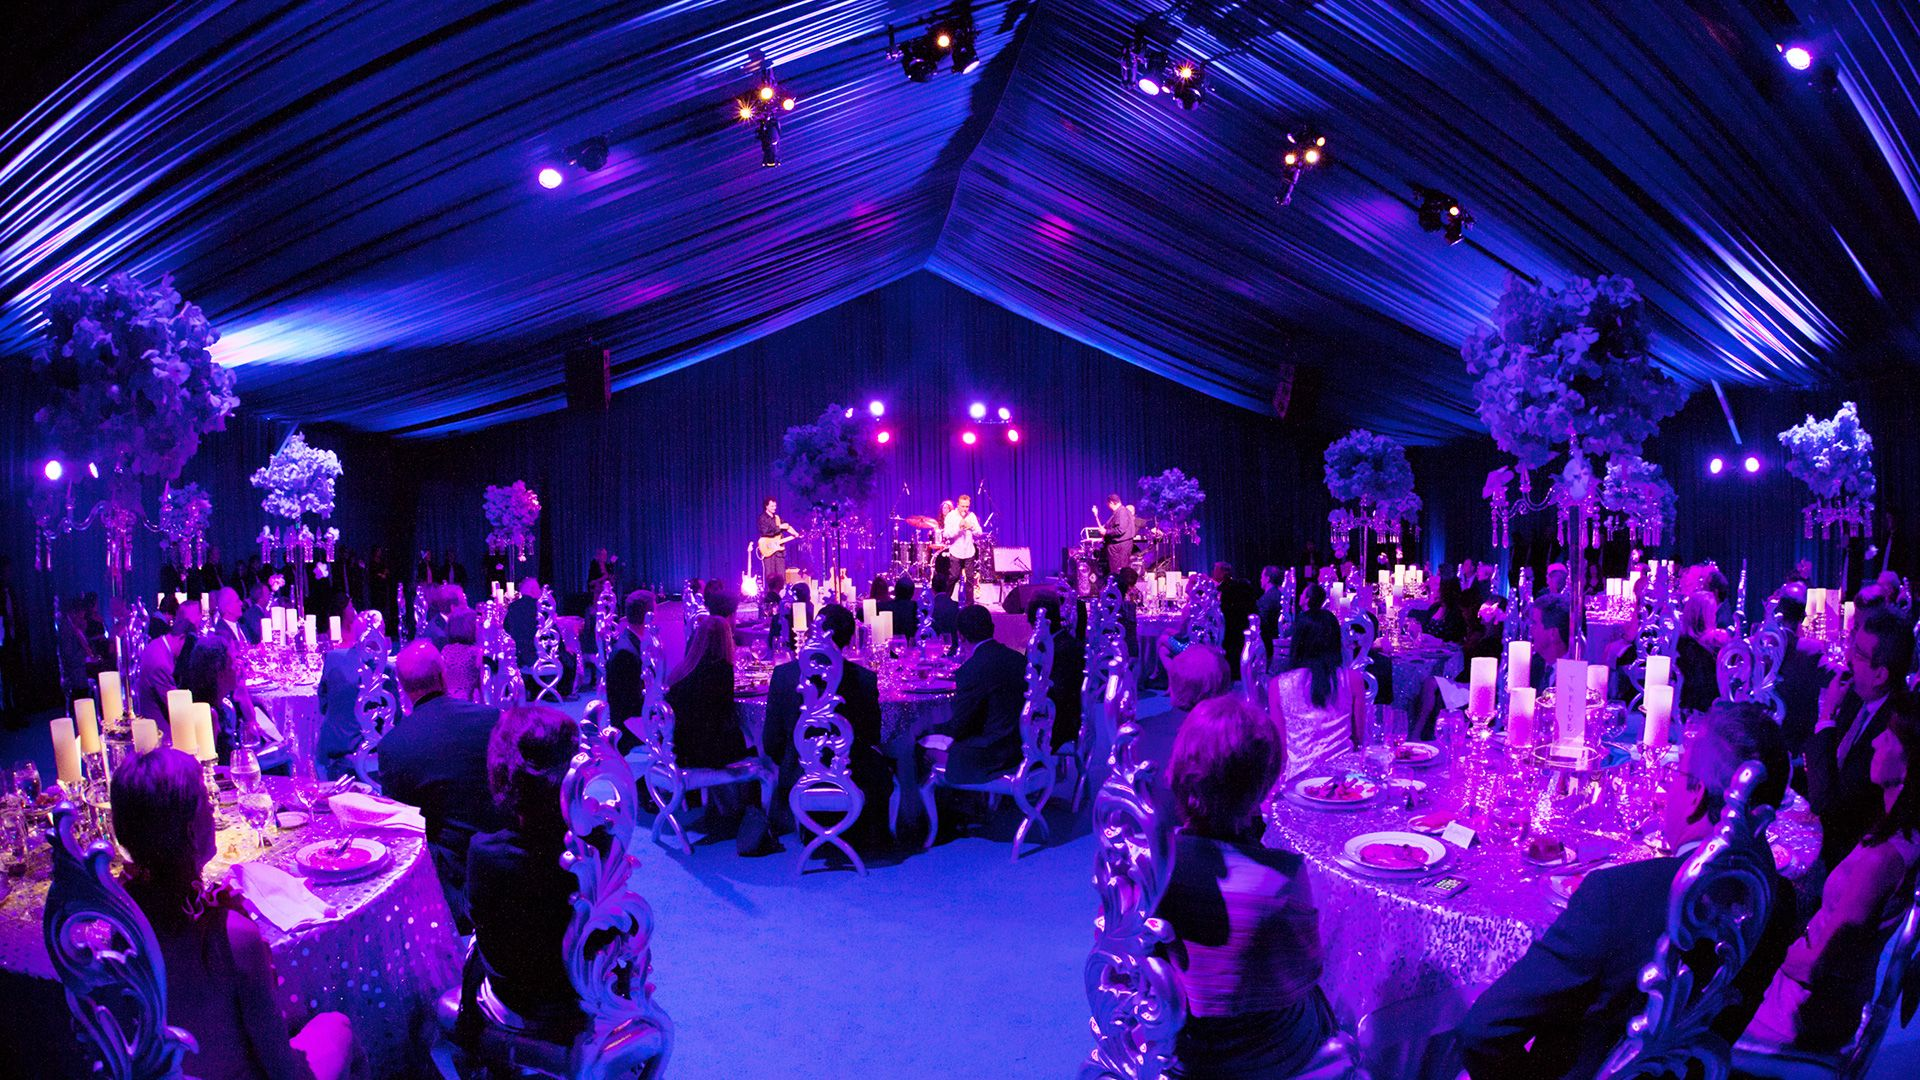 Wedding decoration images hd  Purple event created by The Catered Affair  All Things Purple